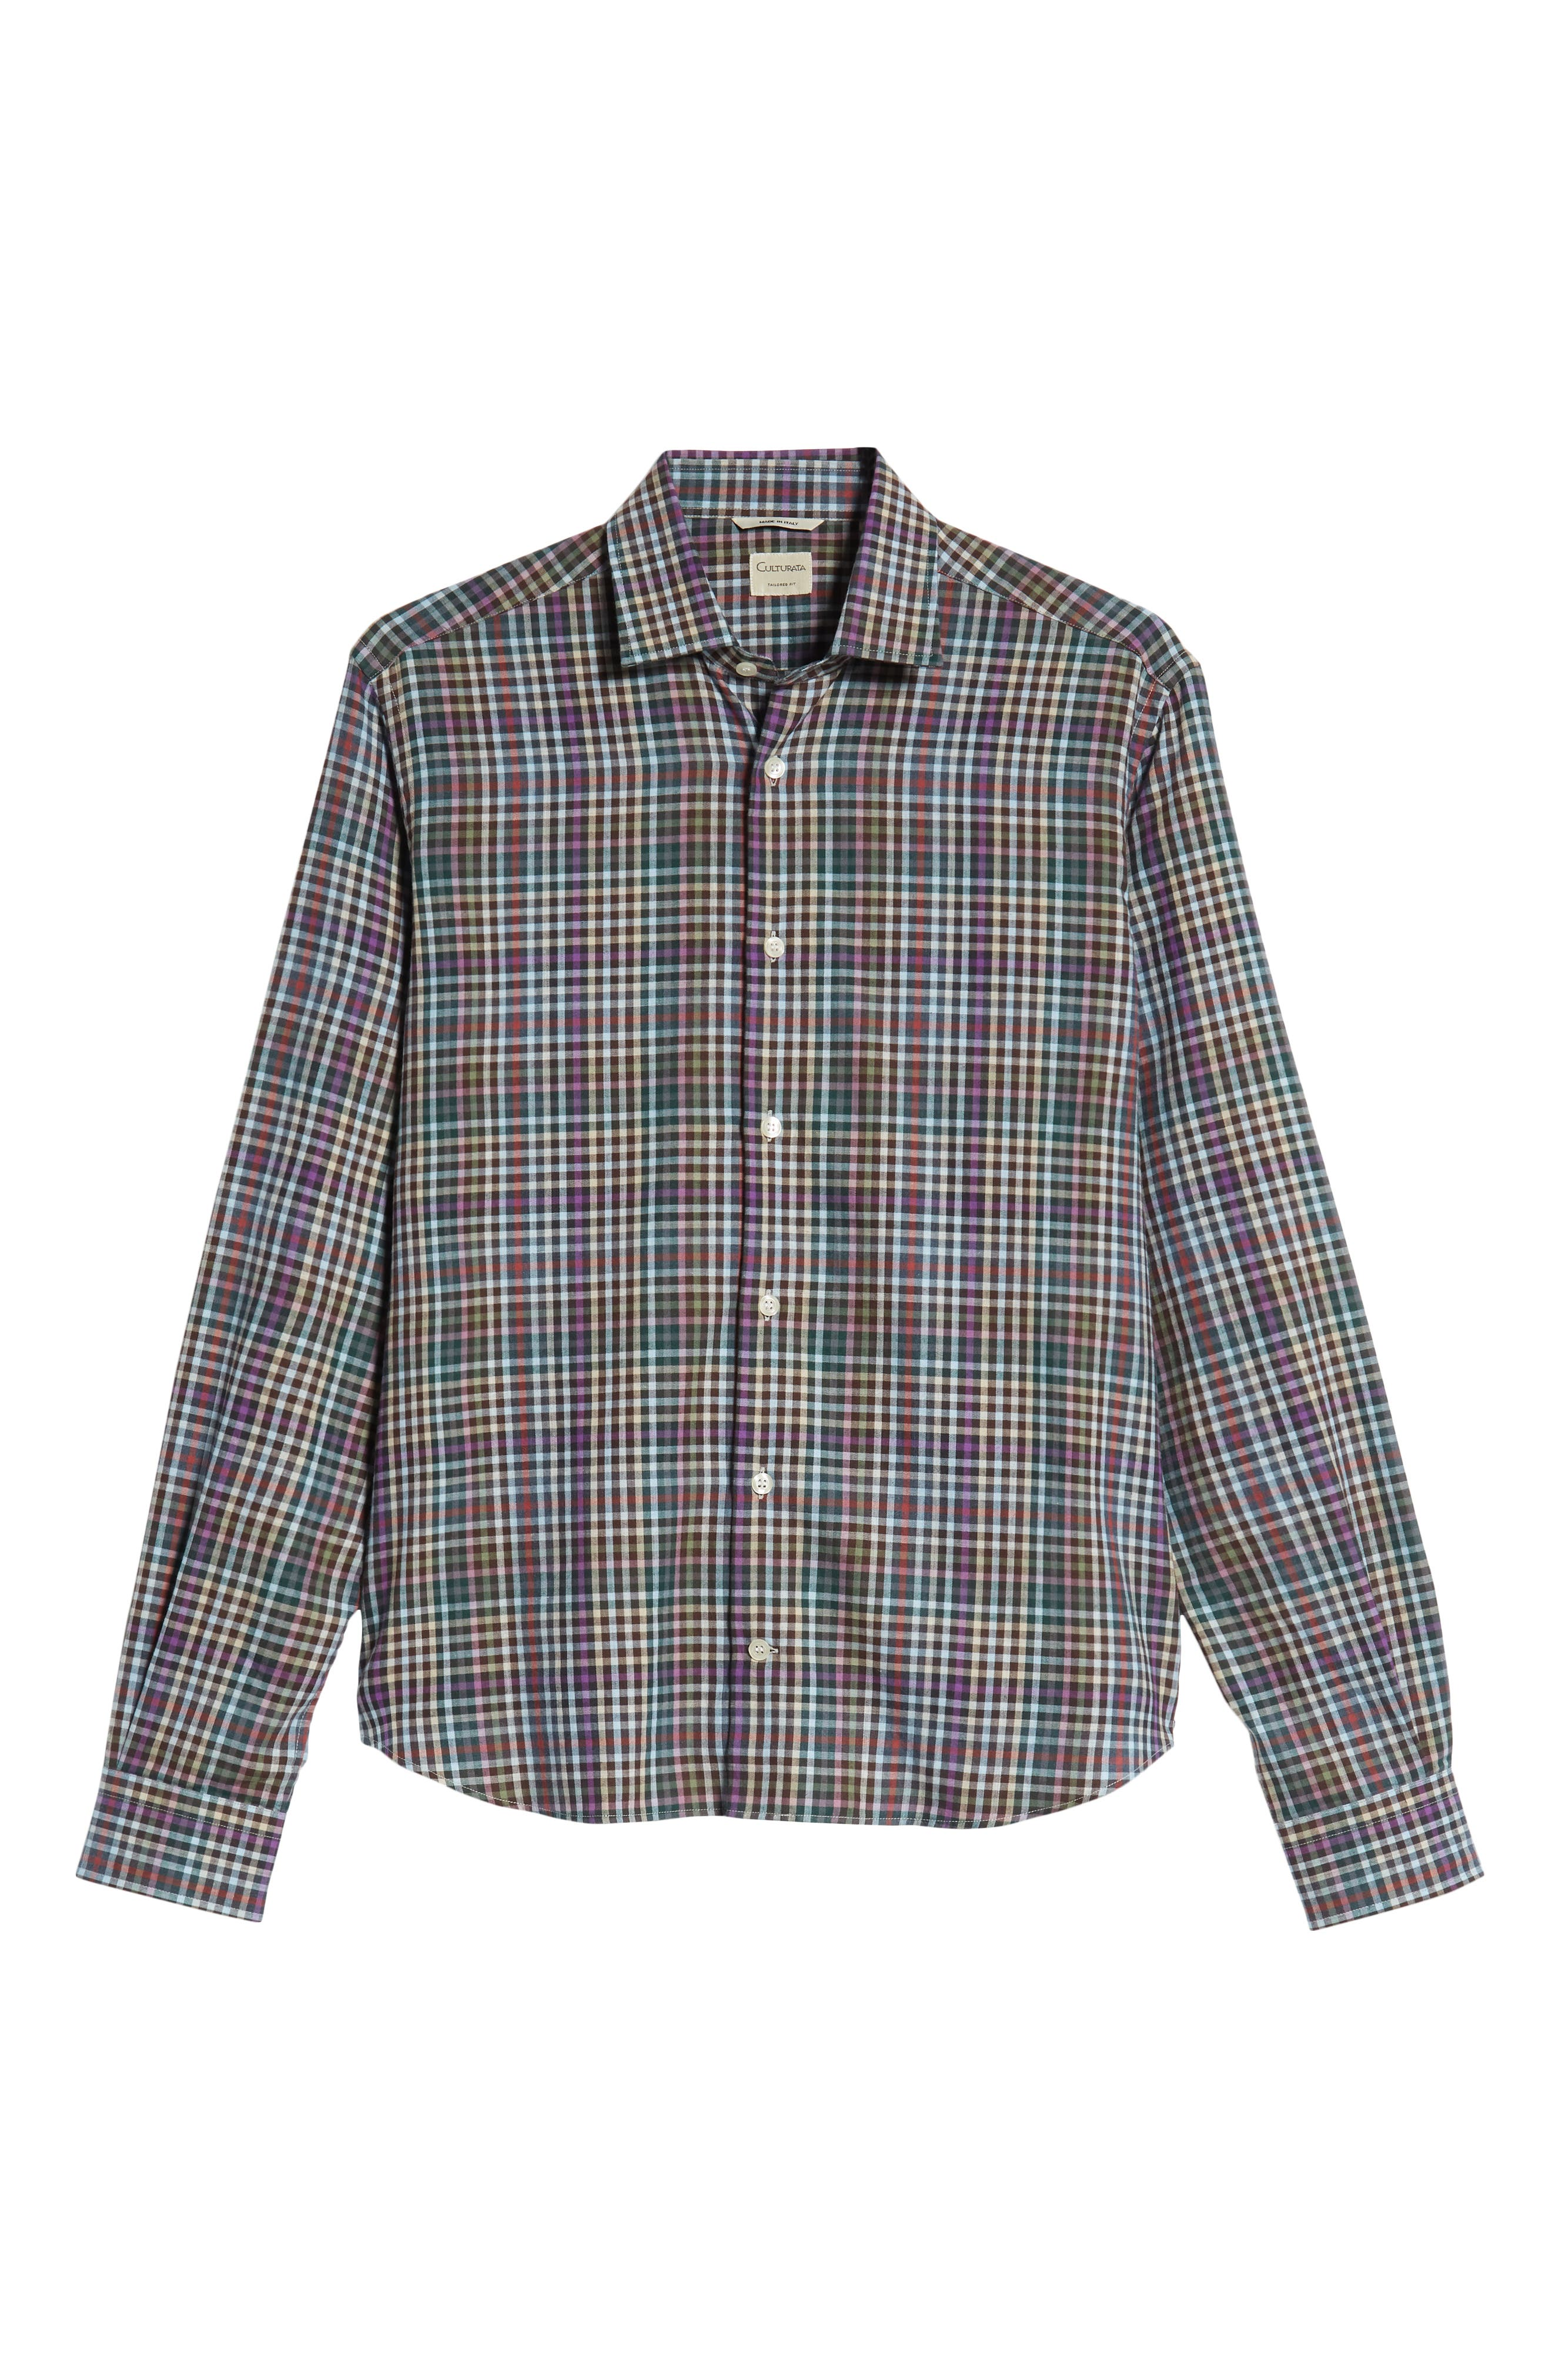 Tailored Fit Check Sport Shirt,                             Alternate thumbnail 5, color,                             020